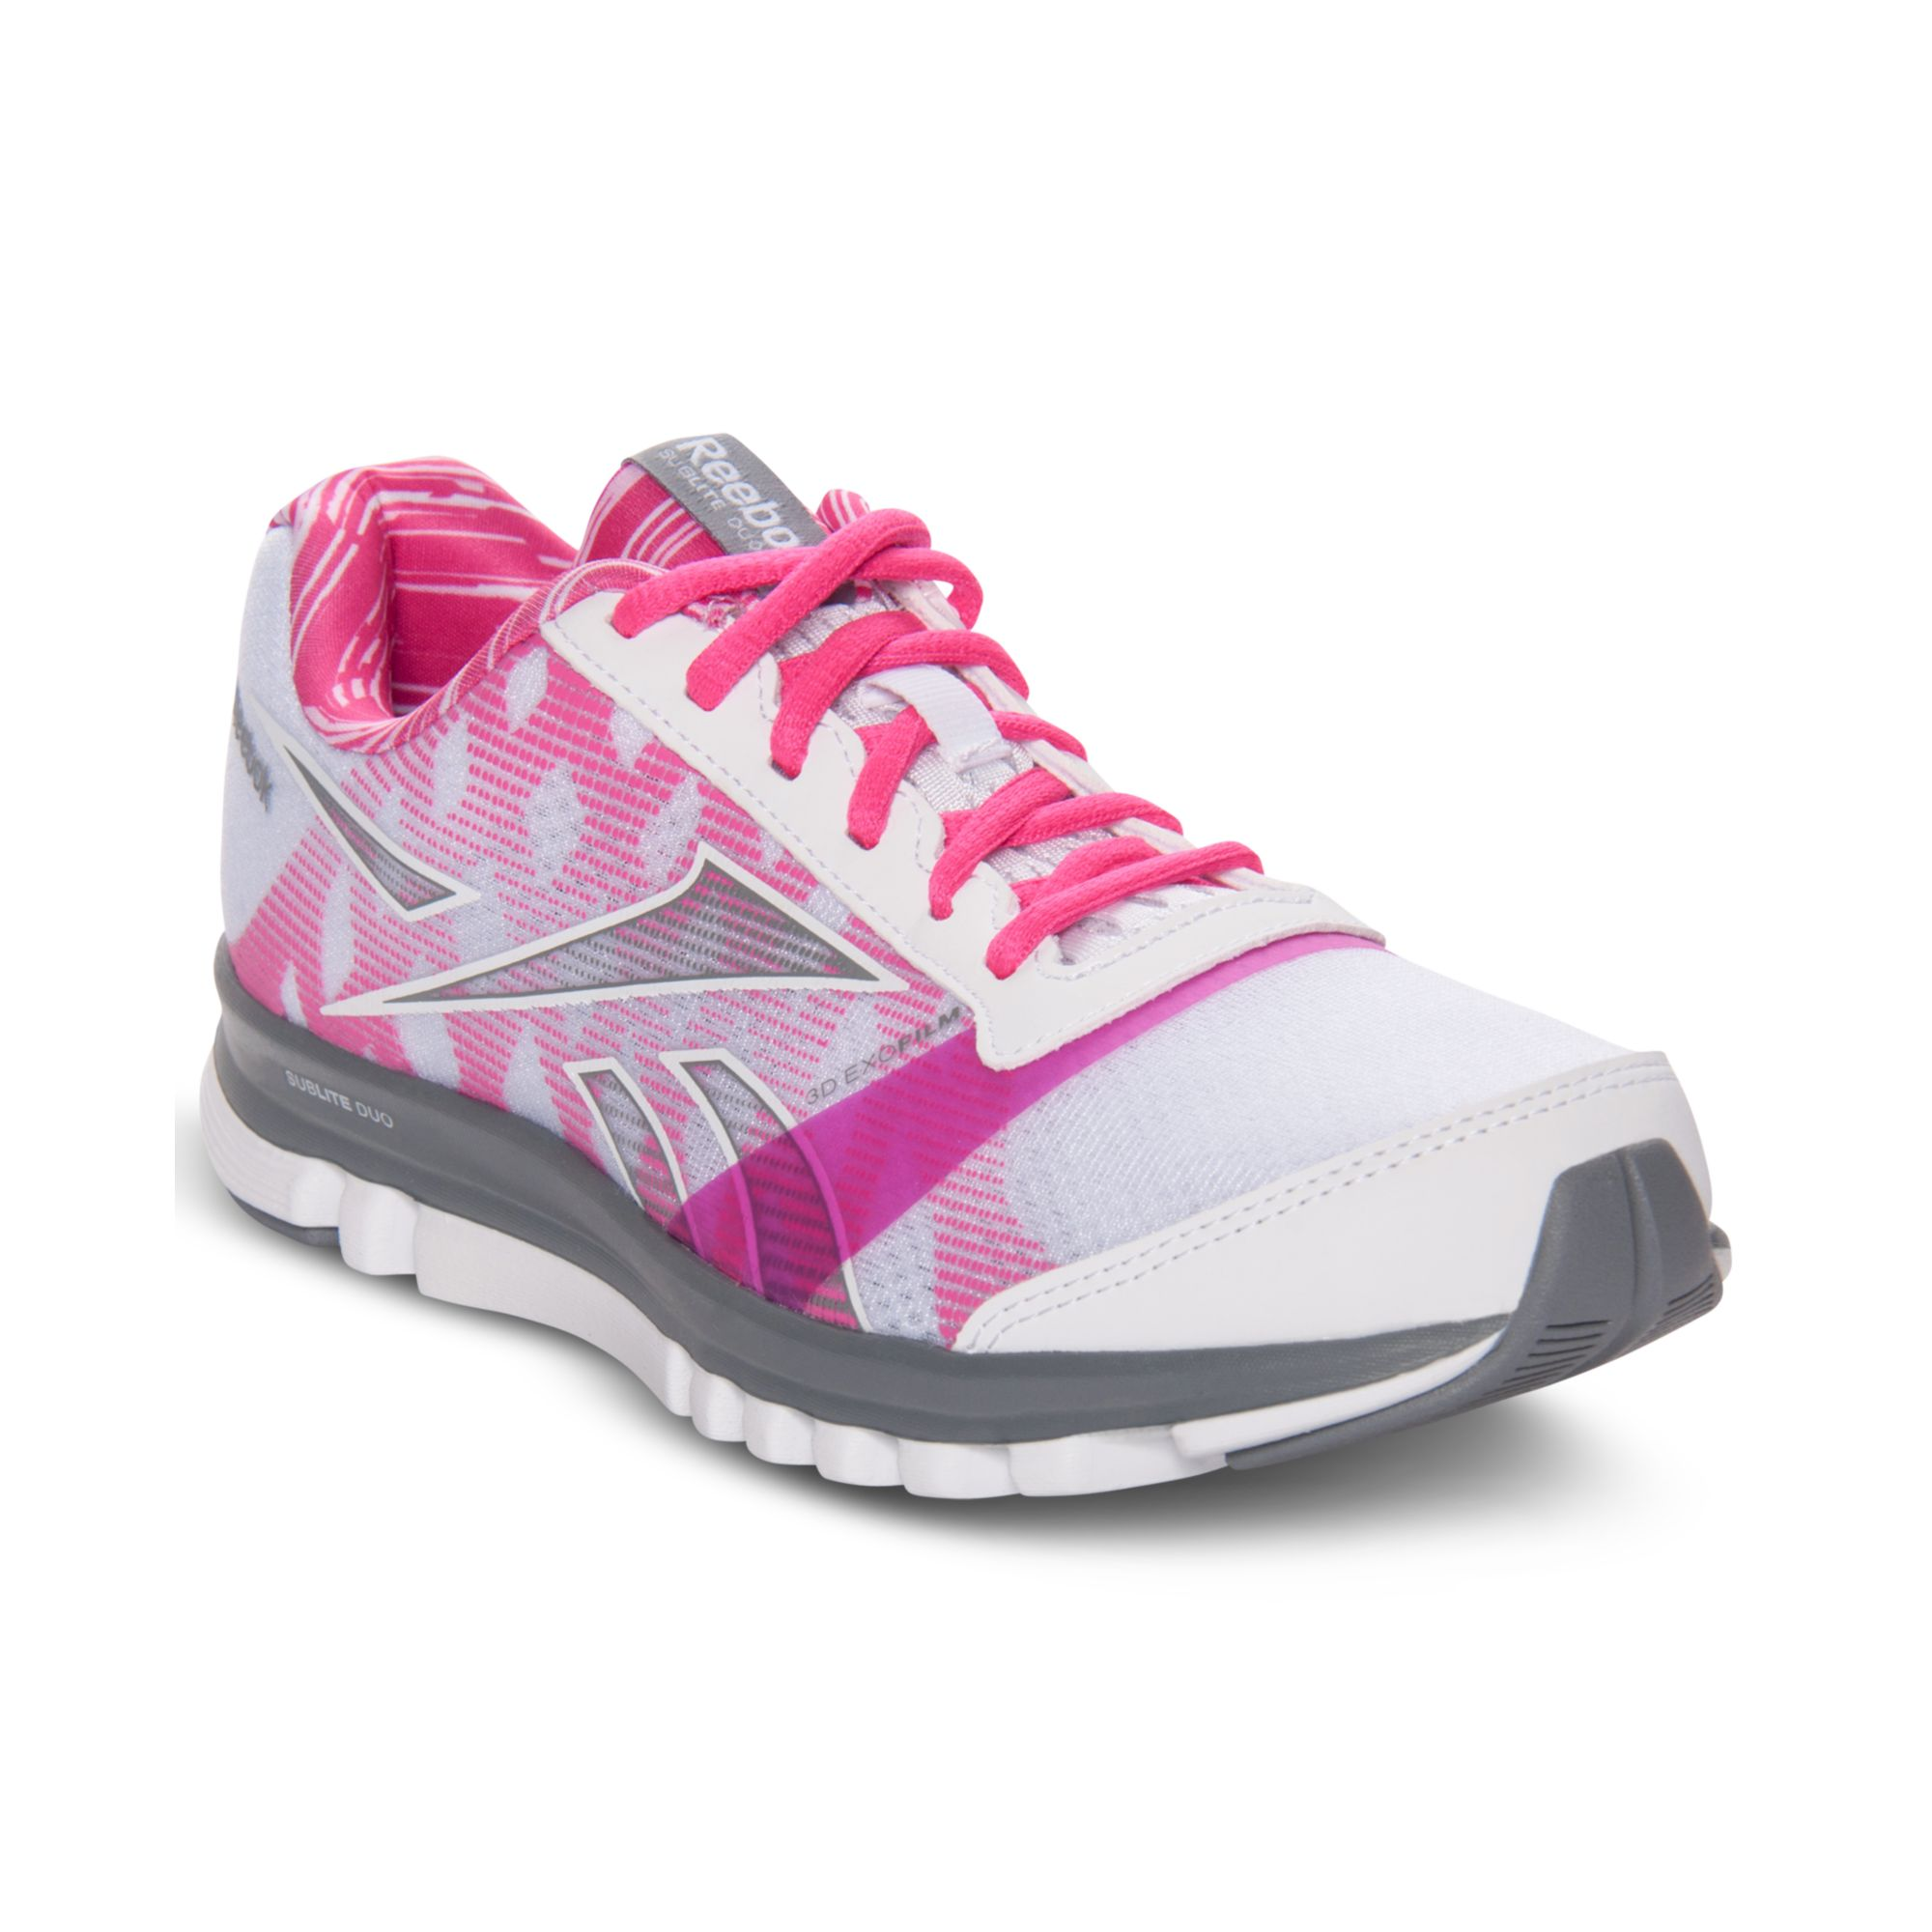 Lyst - Reebok Sublite Duo Breast Cancer Running Sneakers in Pink d2066be34